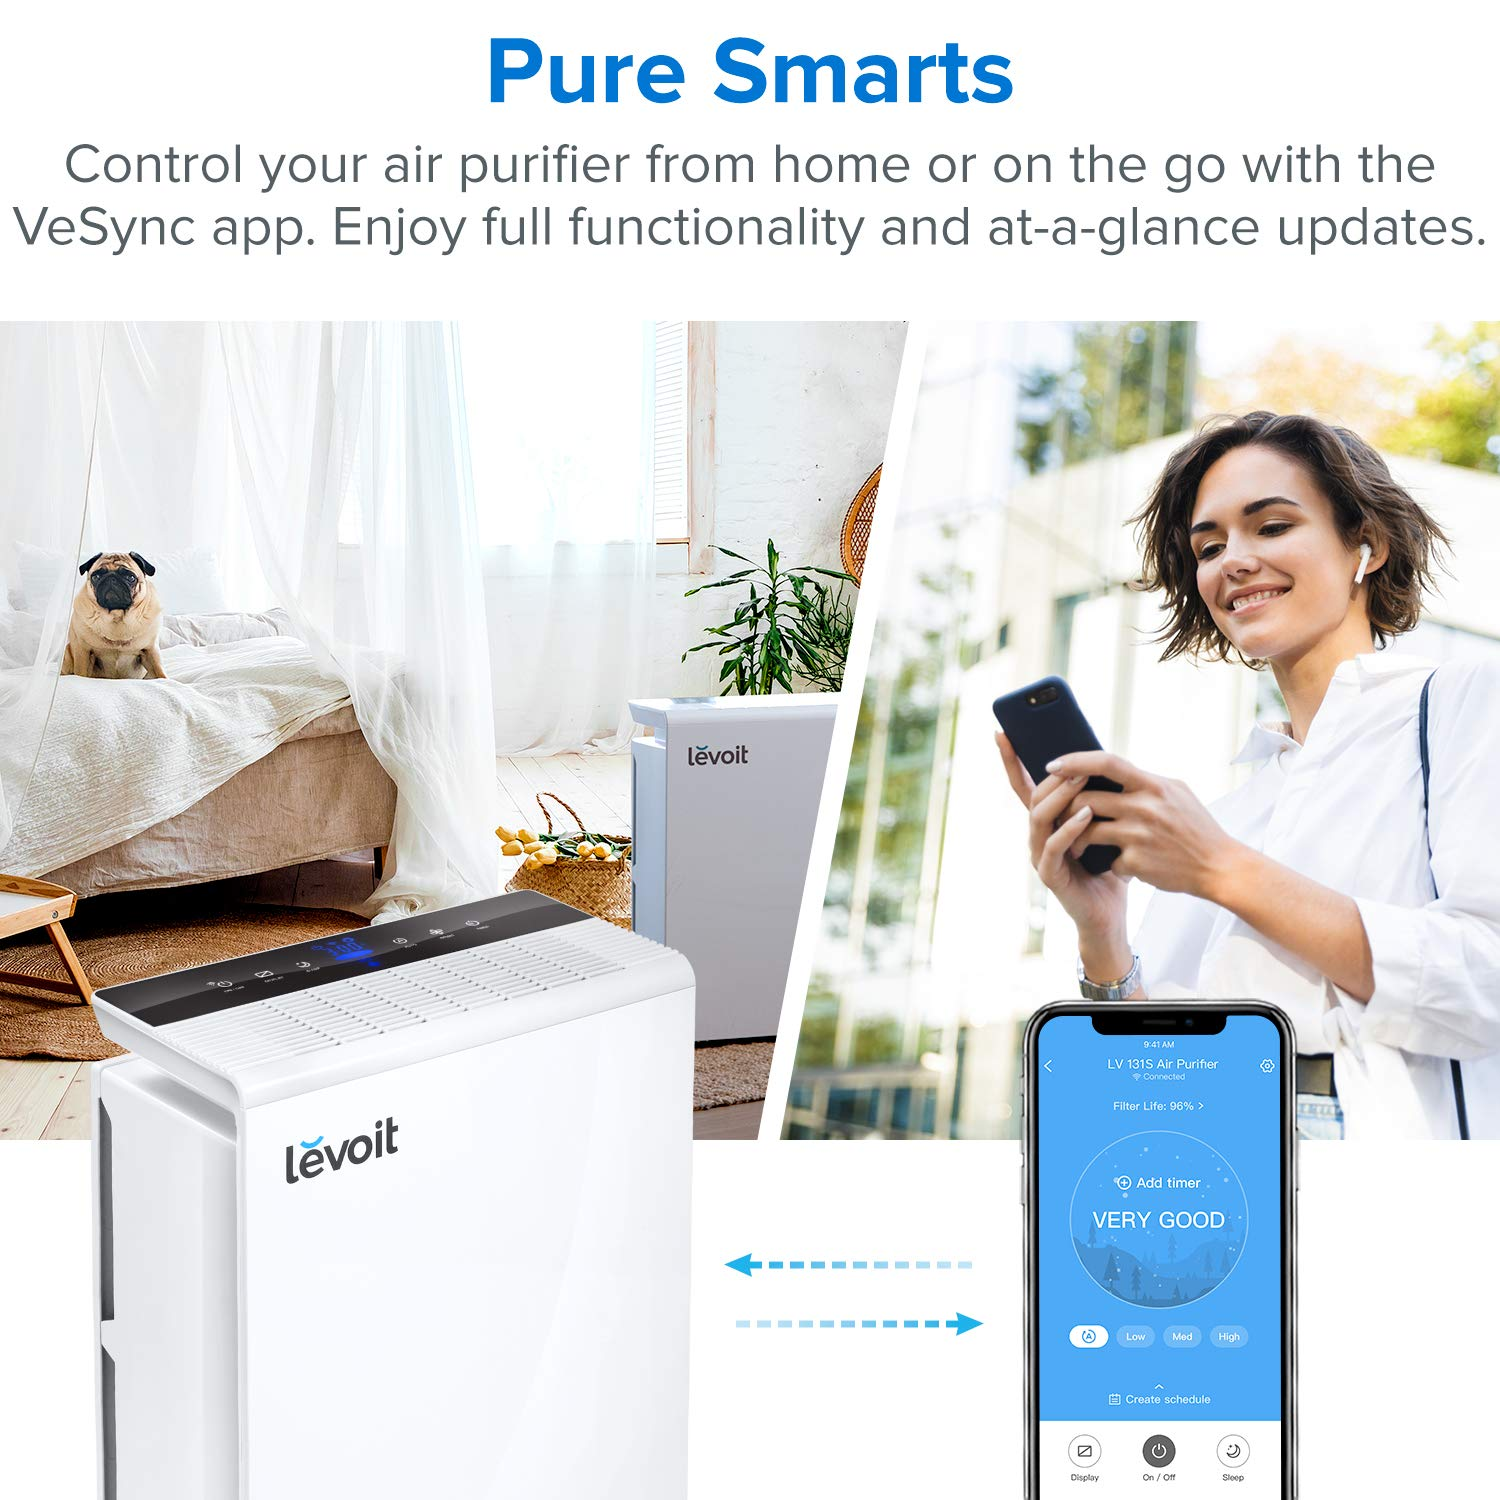 LEVOIT Smart WiFi Air Purifier for Home Large Room with True HEPA Filter, Air Cleaner for Allergies and Pets, Smokers, Mold, Pollen,Odor Eliminators for Bedroom, Energy Star,Work with Alexa, LV-PUR131